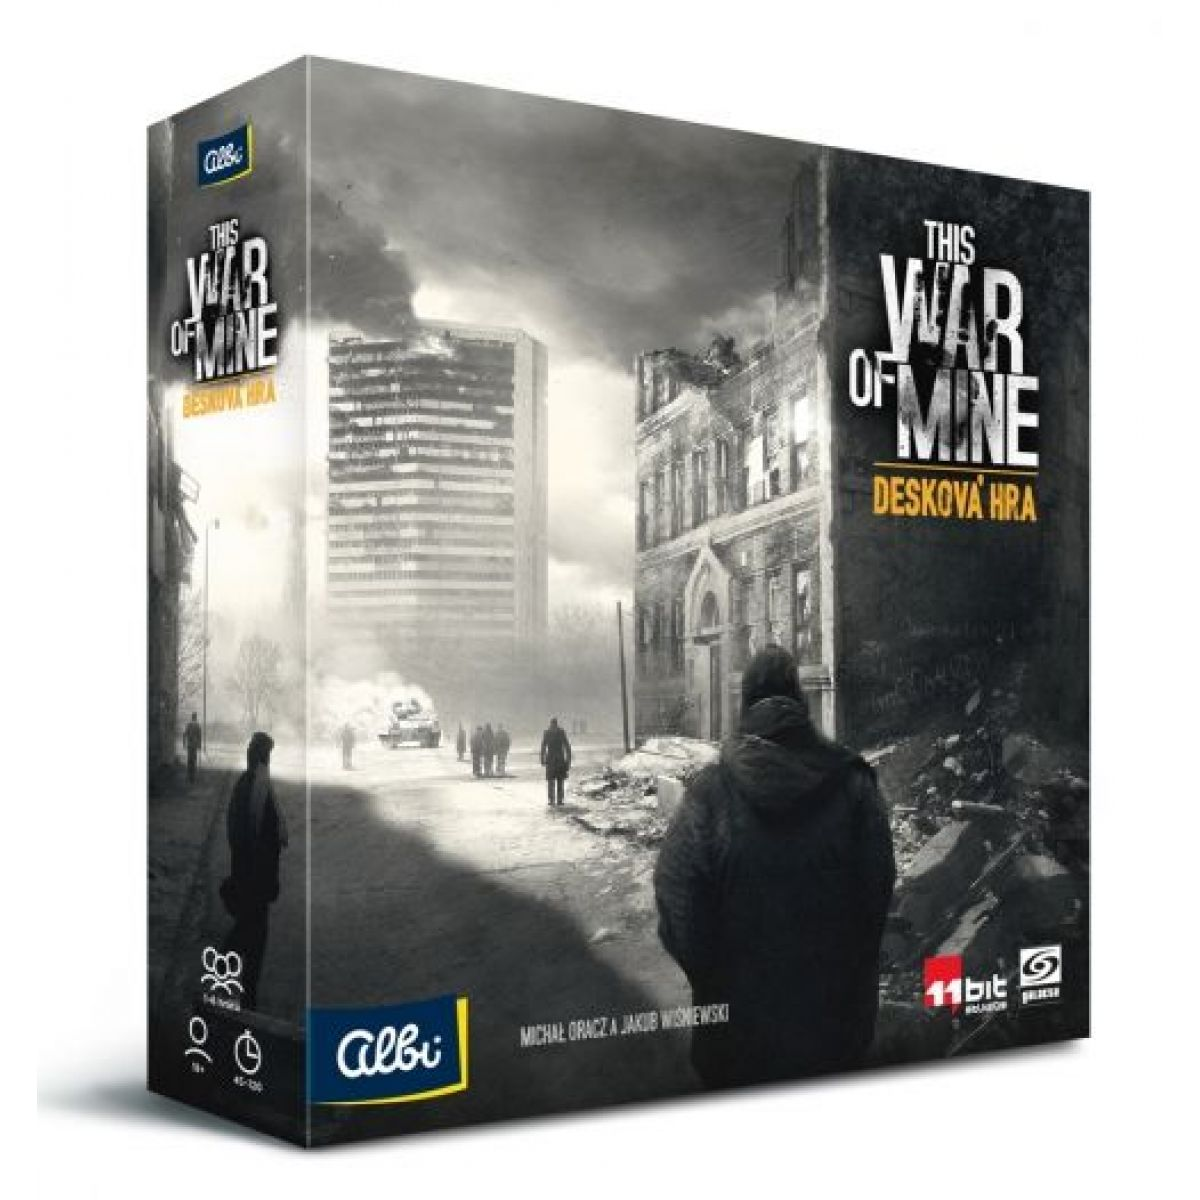 Albi This War of Mine Desková hra